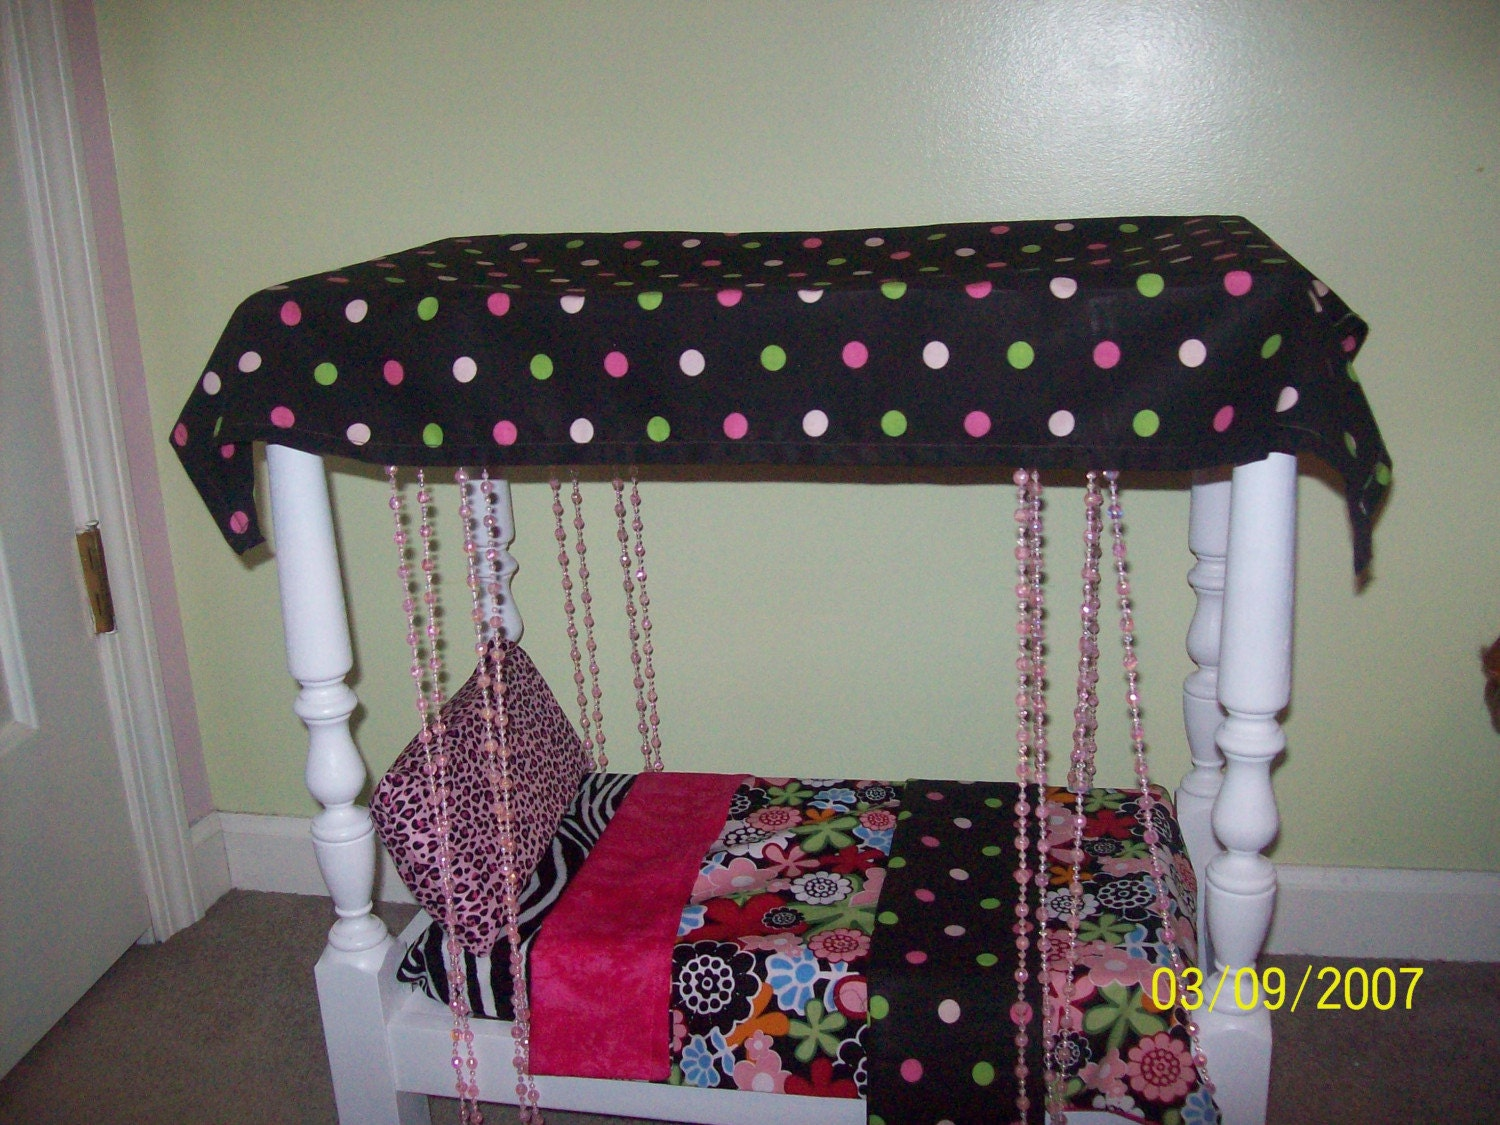 Marvelous photograph of Canopy Doll Bed and Bedding for 18 inch Doll by AbingtonRoad with #78213B color and 1500x1125 pixels